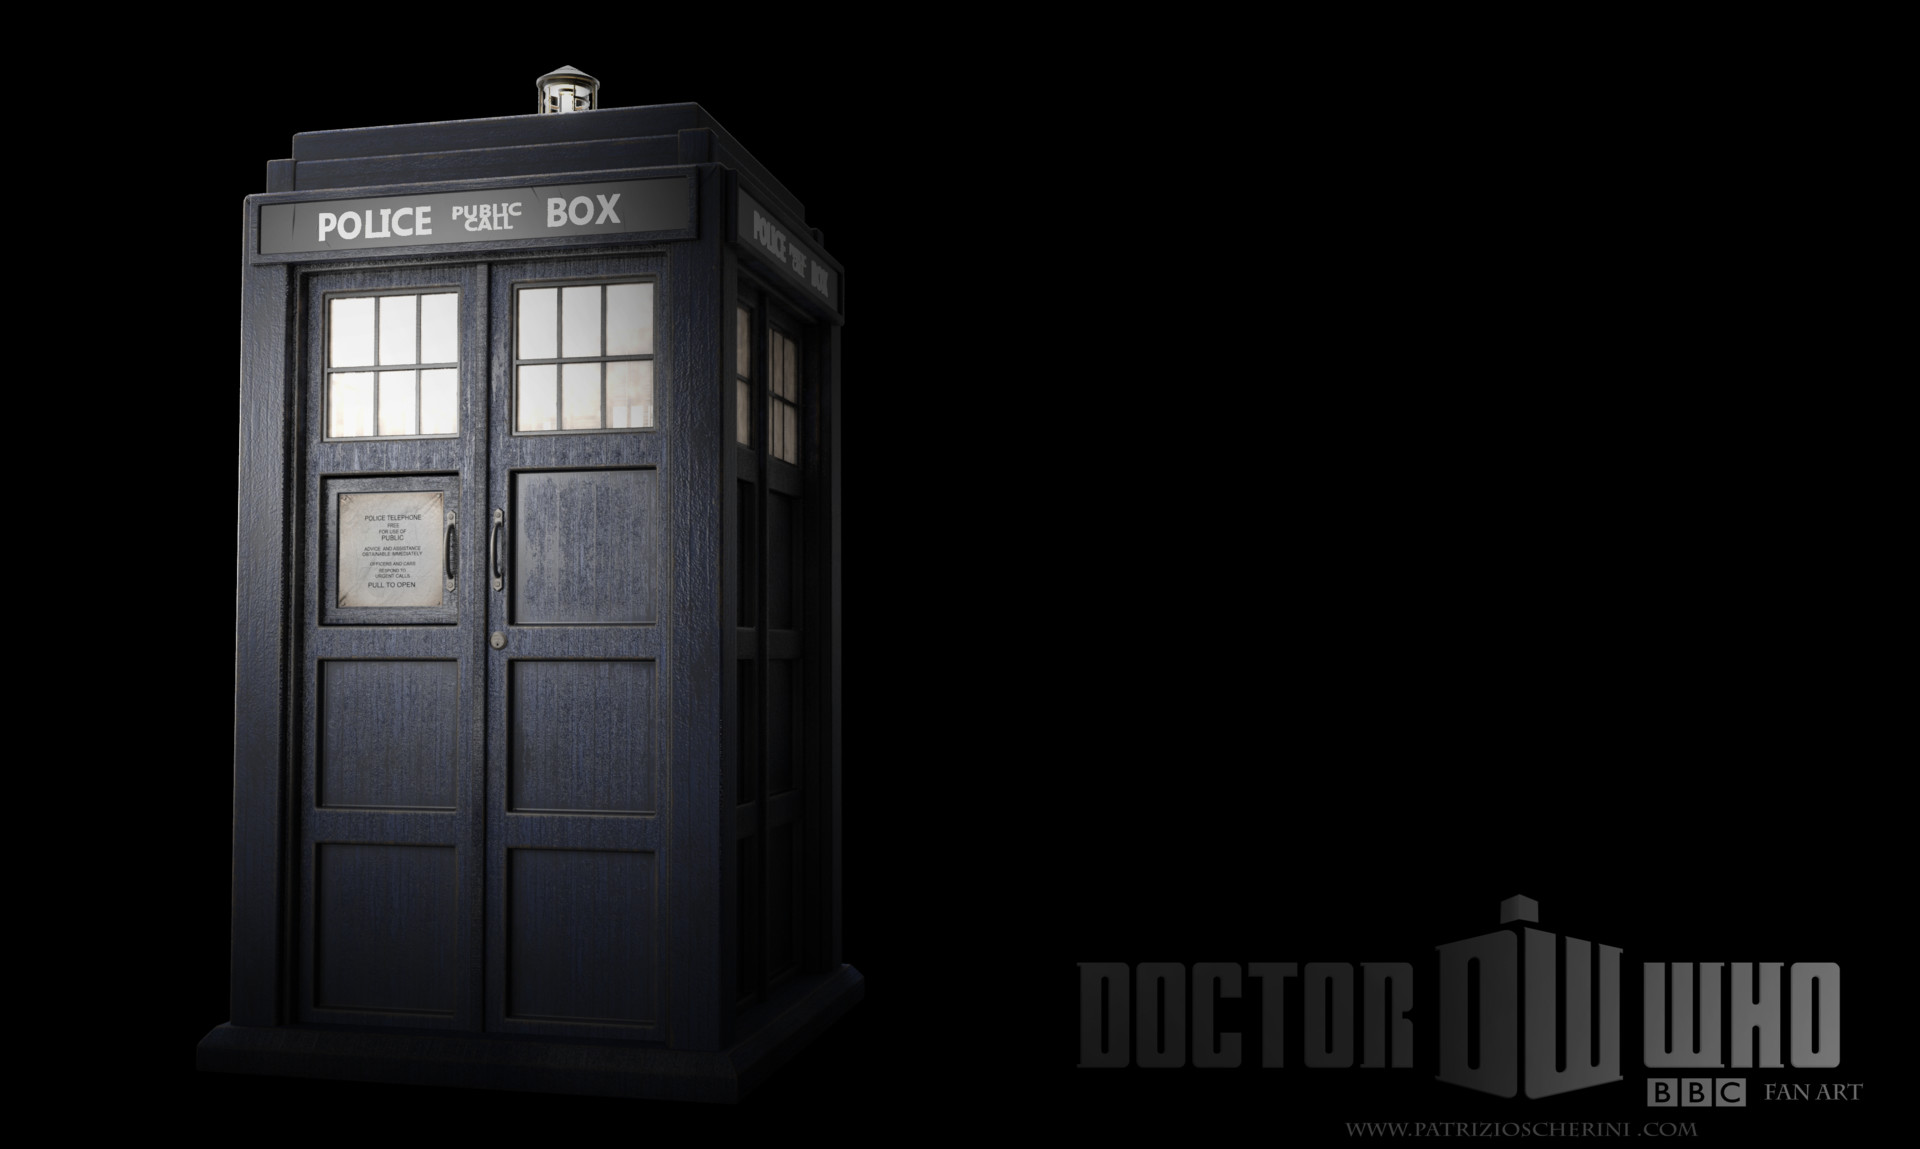 Patrizio scherini tardis basic ed patrizio scherini fan art web